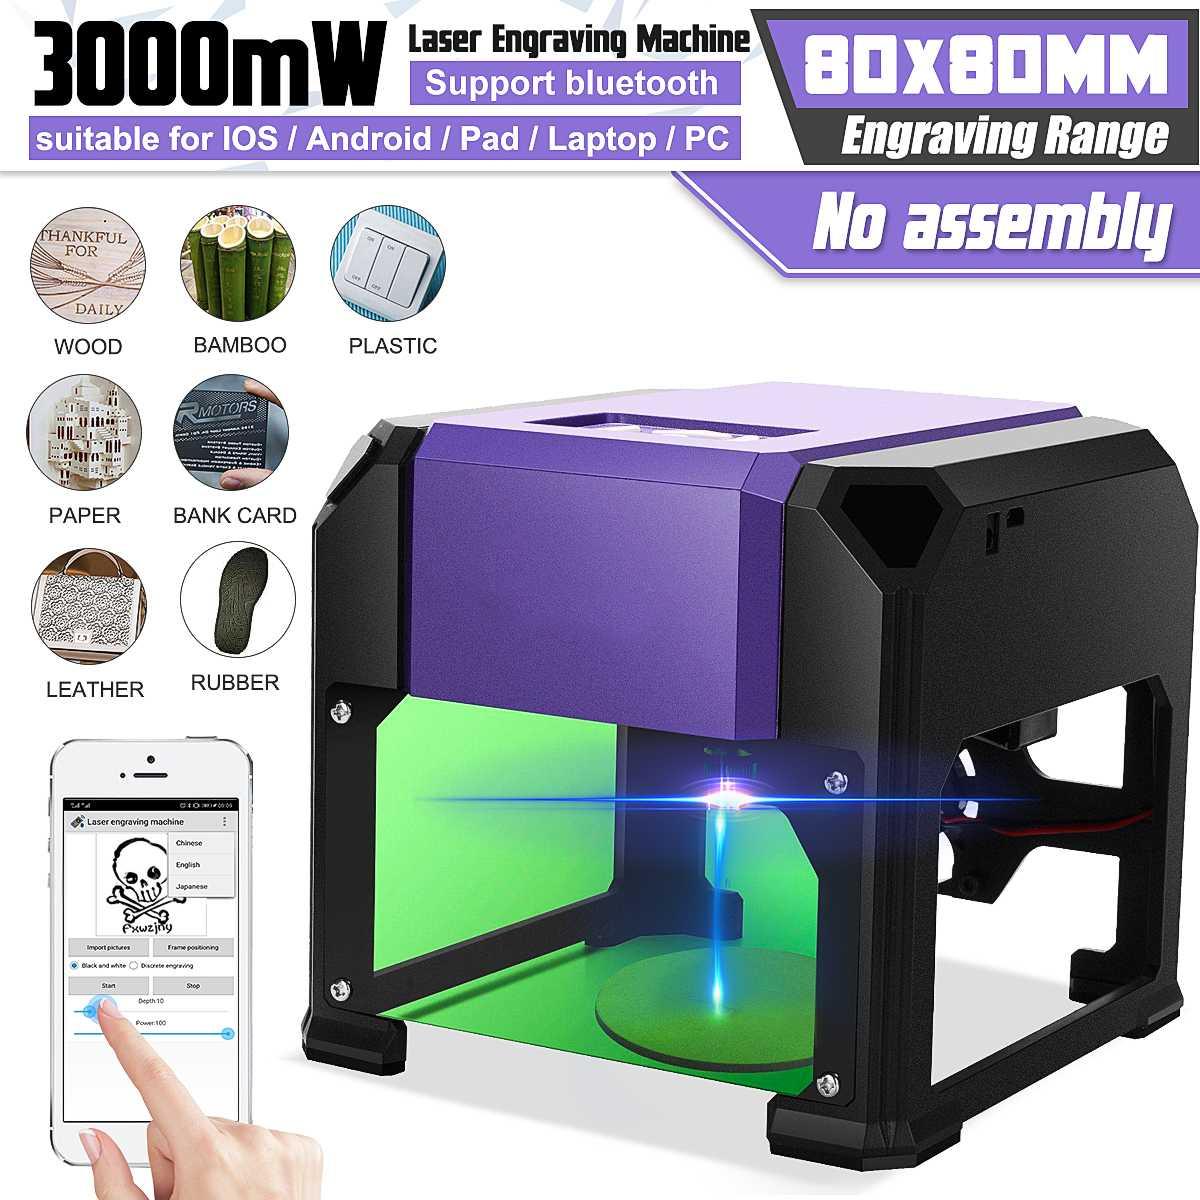 Upgrade Bluetooth Mini 3000MW Purple CNC Laser Engraving Machine  AC 110-220V DIY Engraver Desktop Wood Router/Cutter/Printer